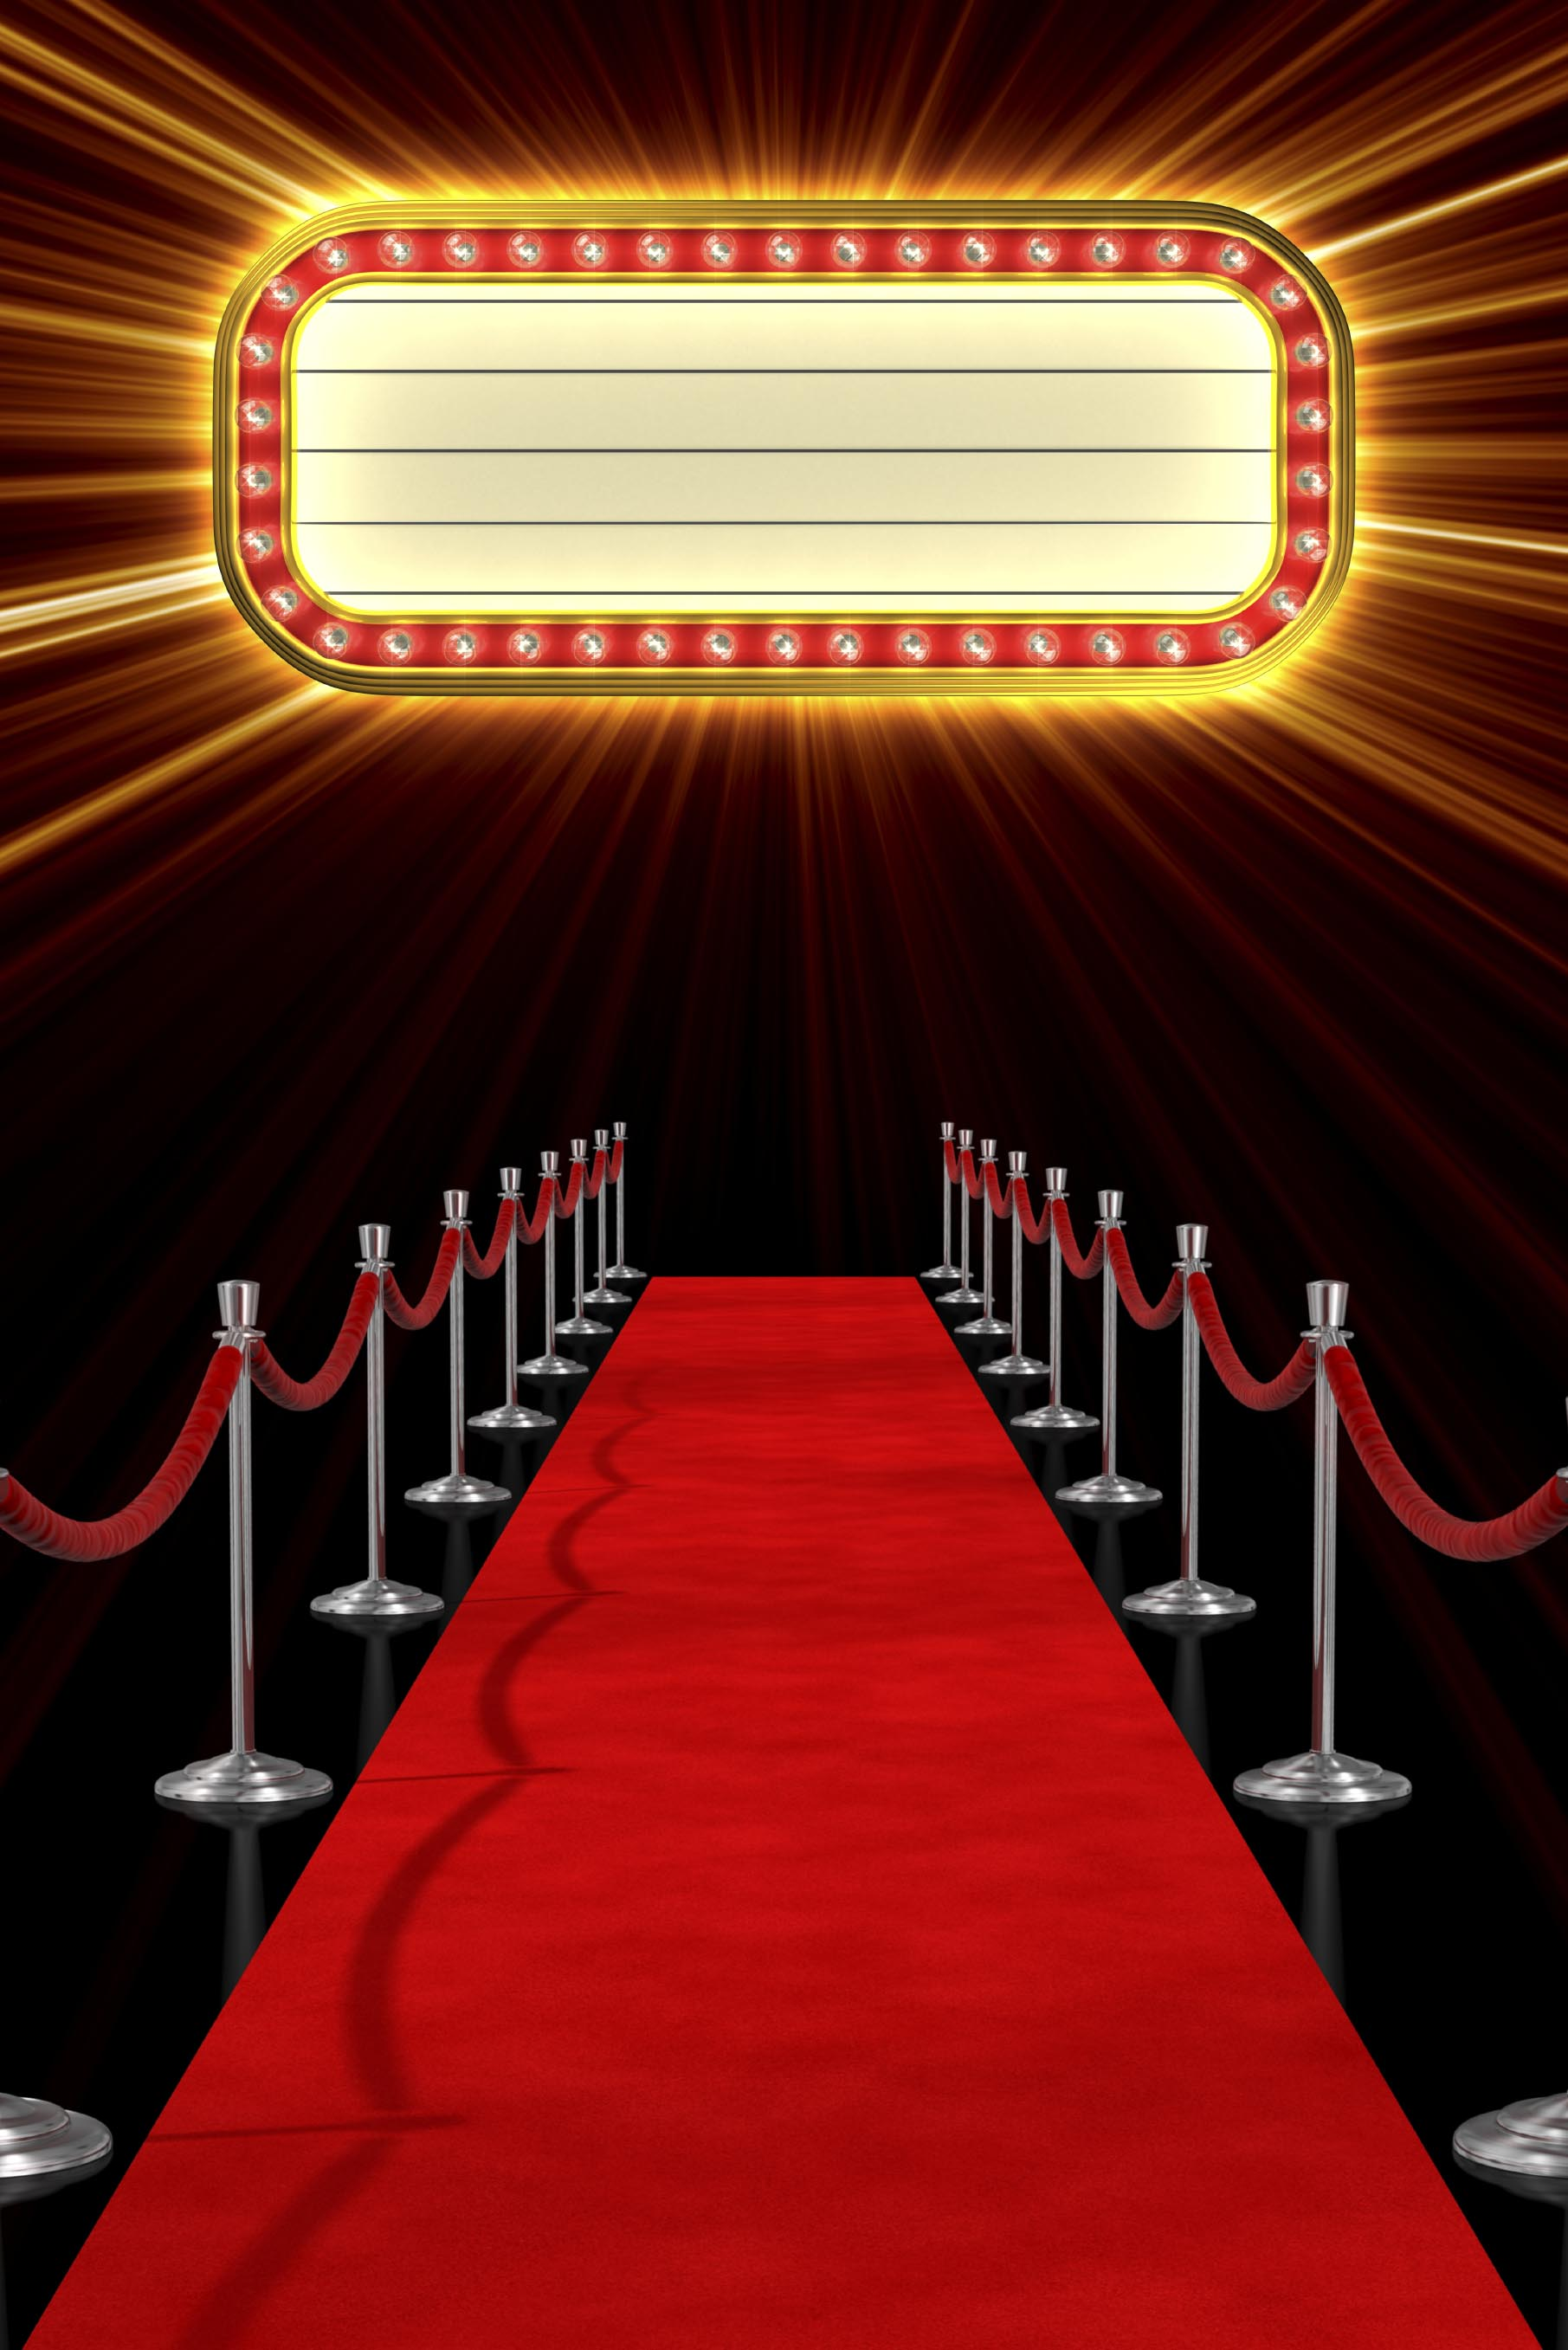 Free cliparts backgrounds download. Hollywood clipart background